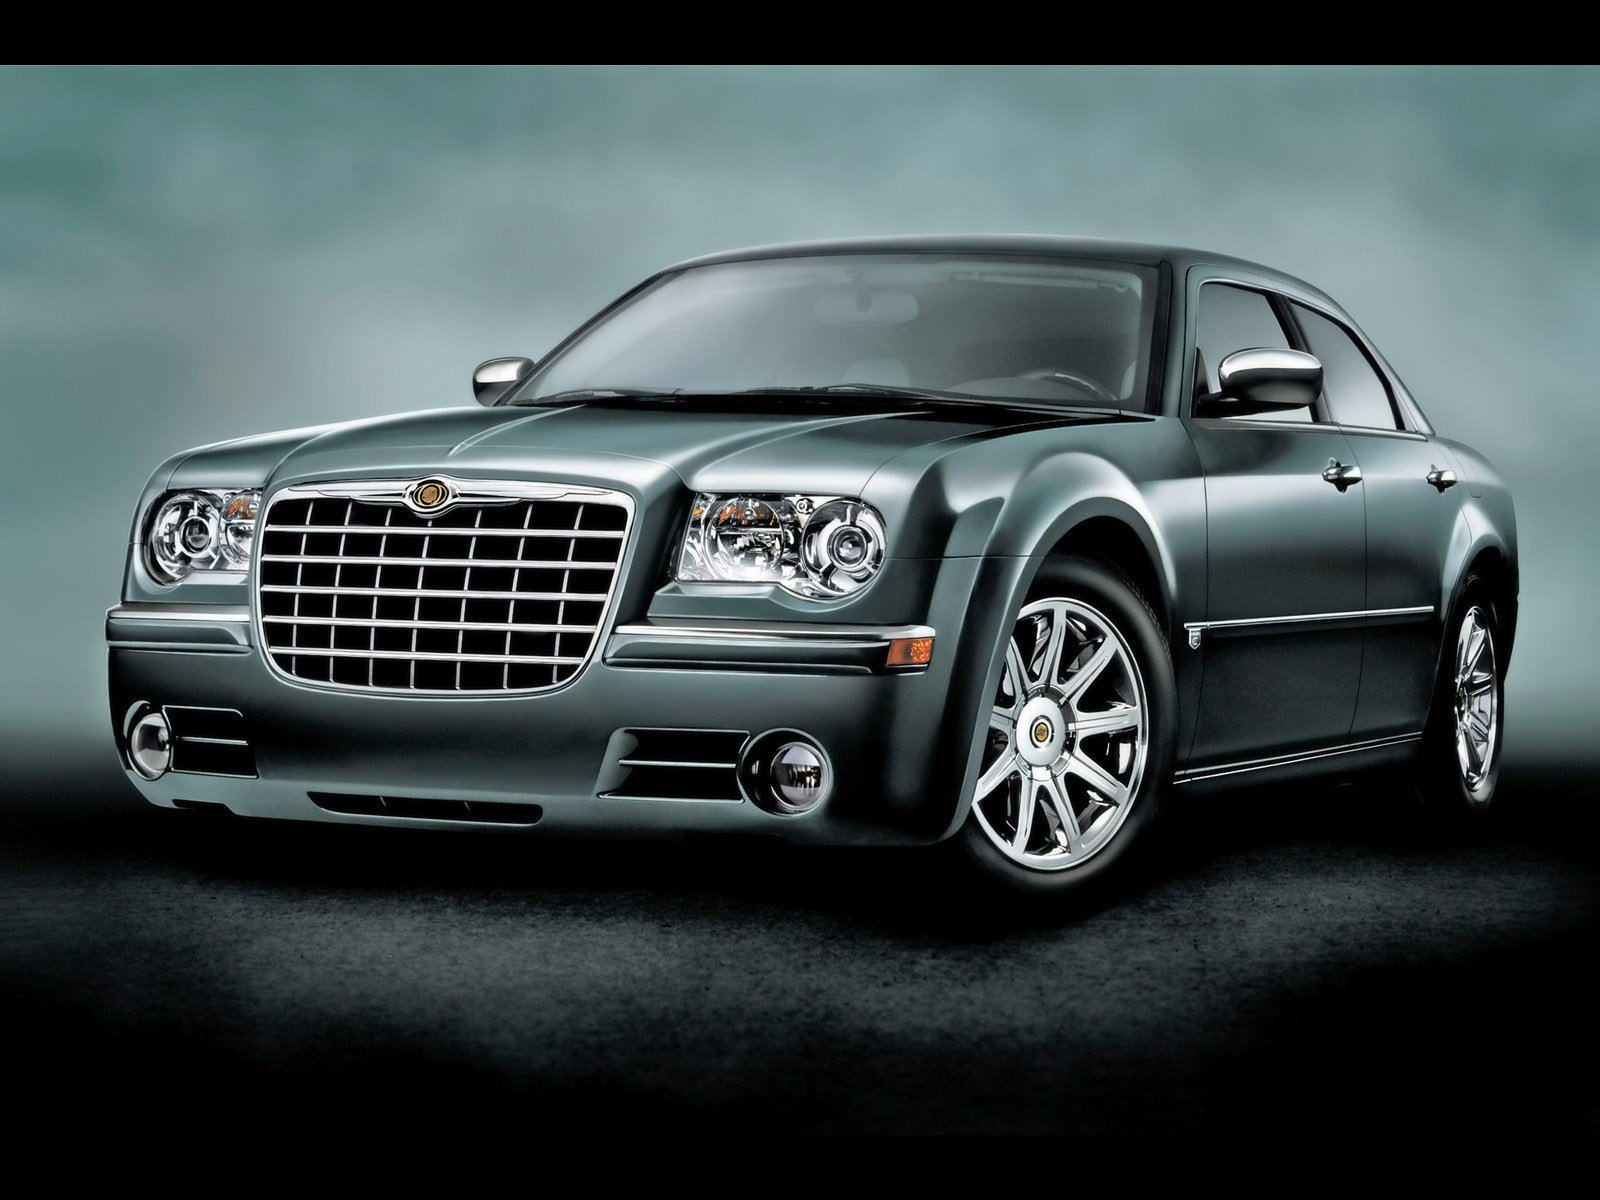 Latest 2005 2010 Chrysler 300 The Return Of The Beautiful Brute Free Download